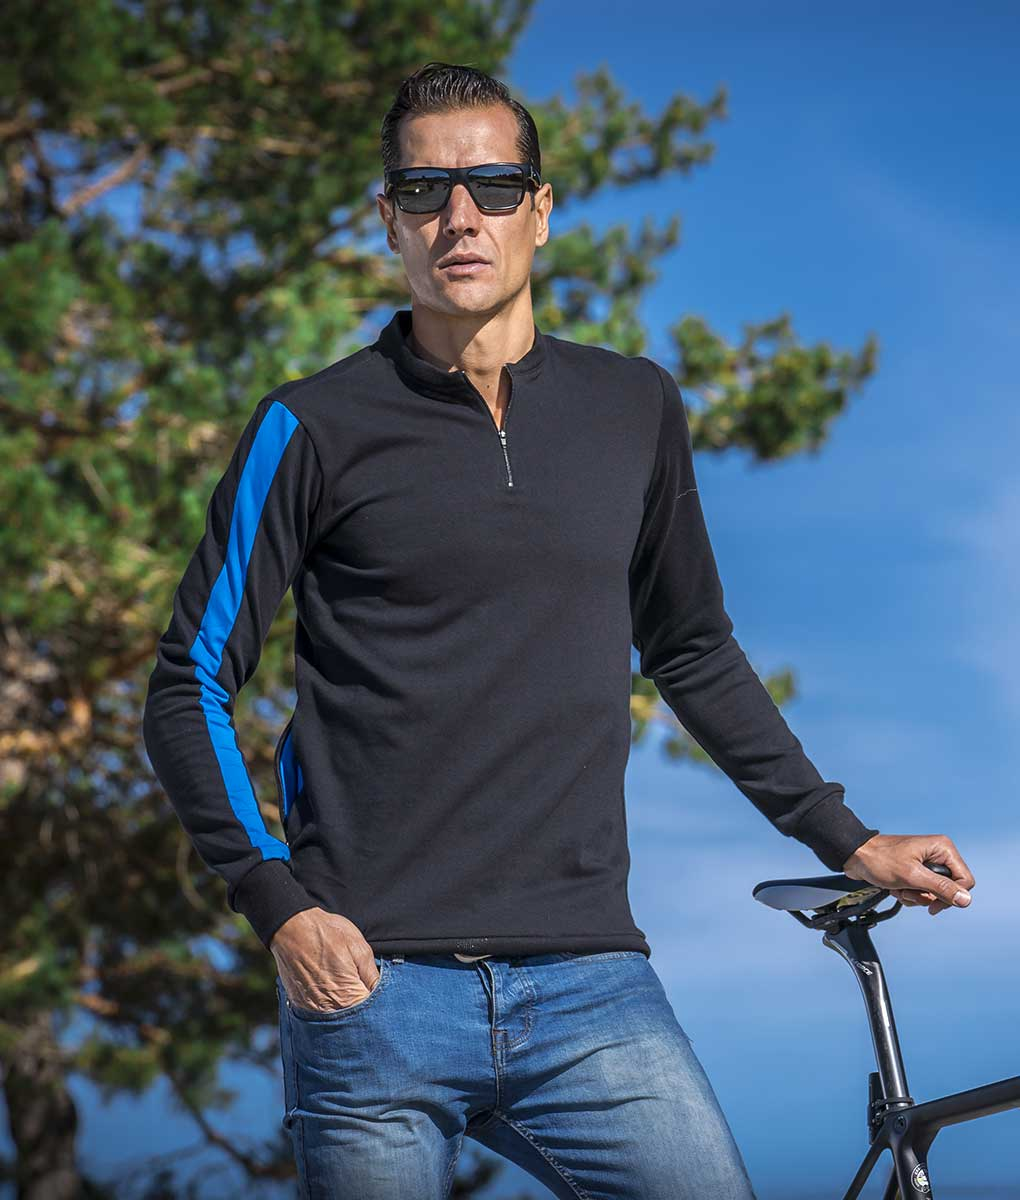 casual-cycling-sweater-fluor-blue-front